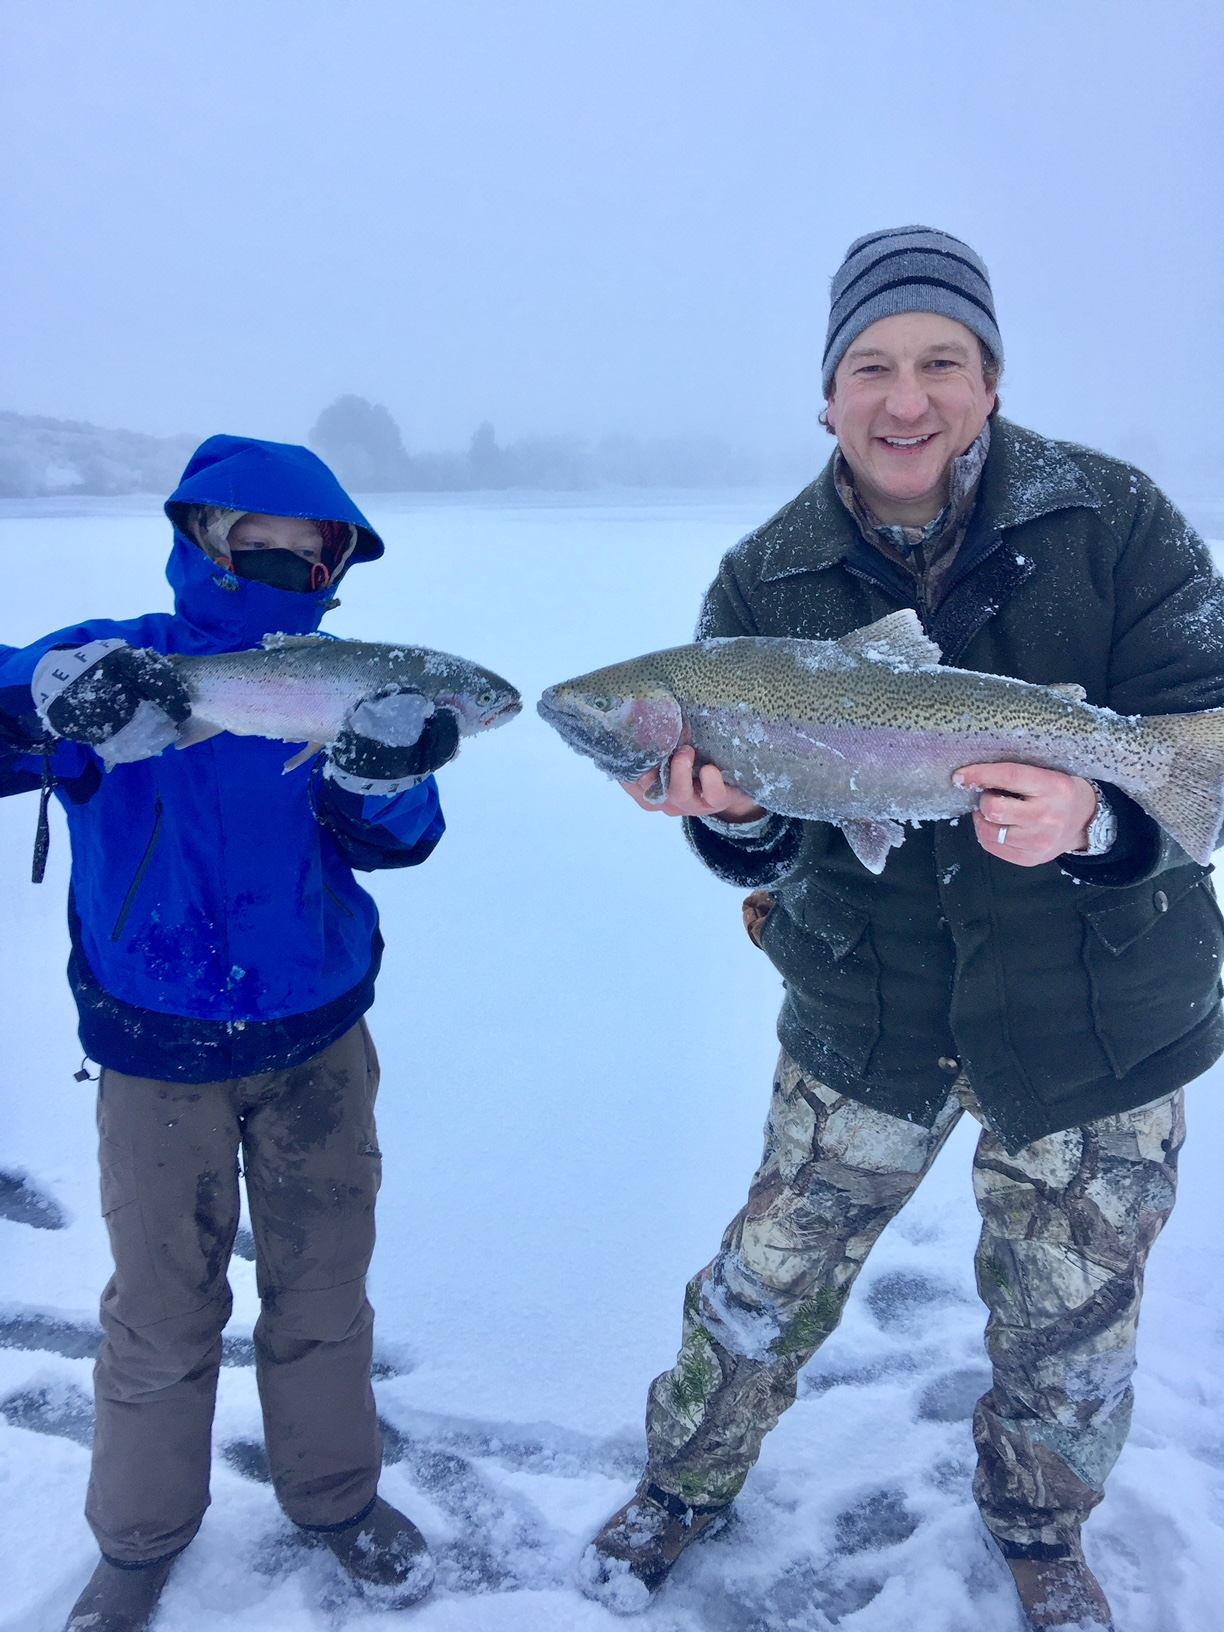 Browns lake ice fishing report montana hunting for 13 ice fishing